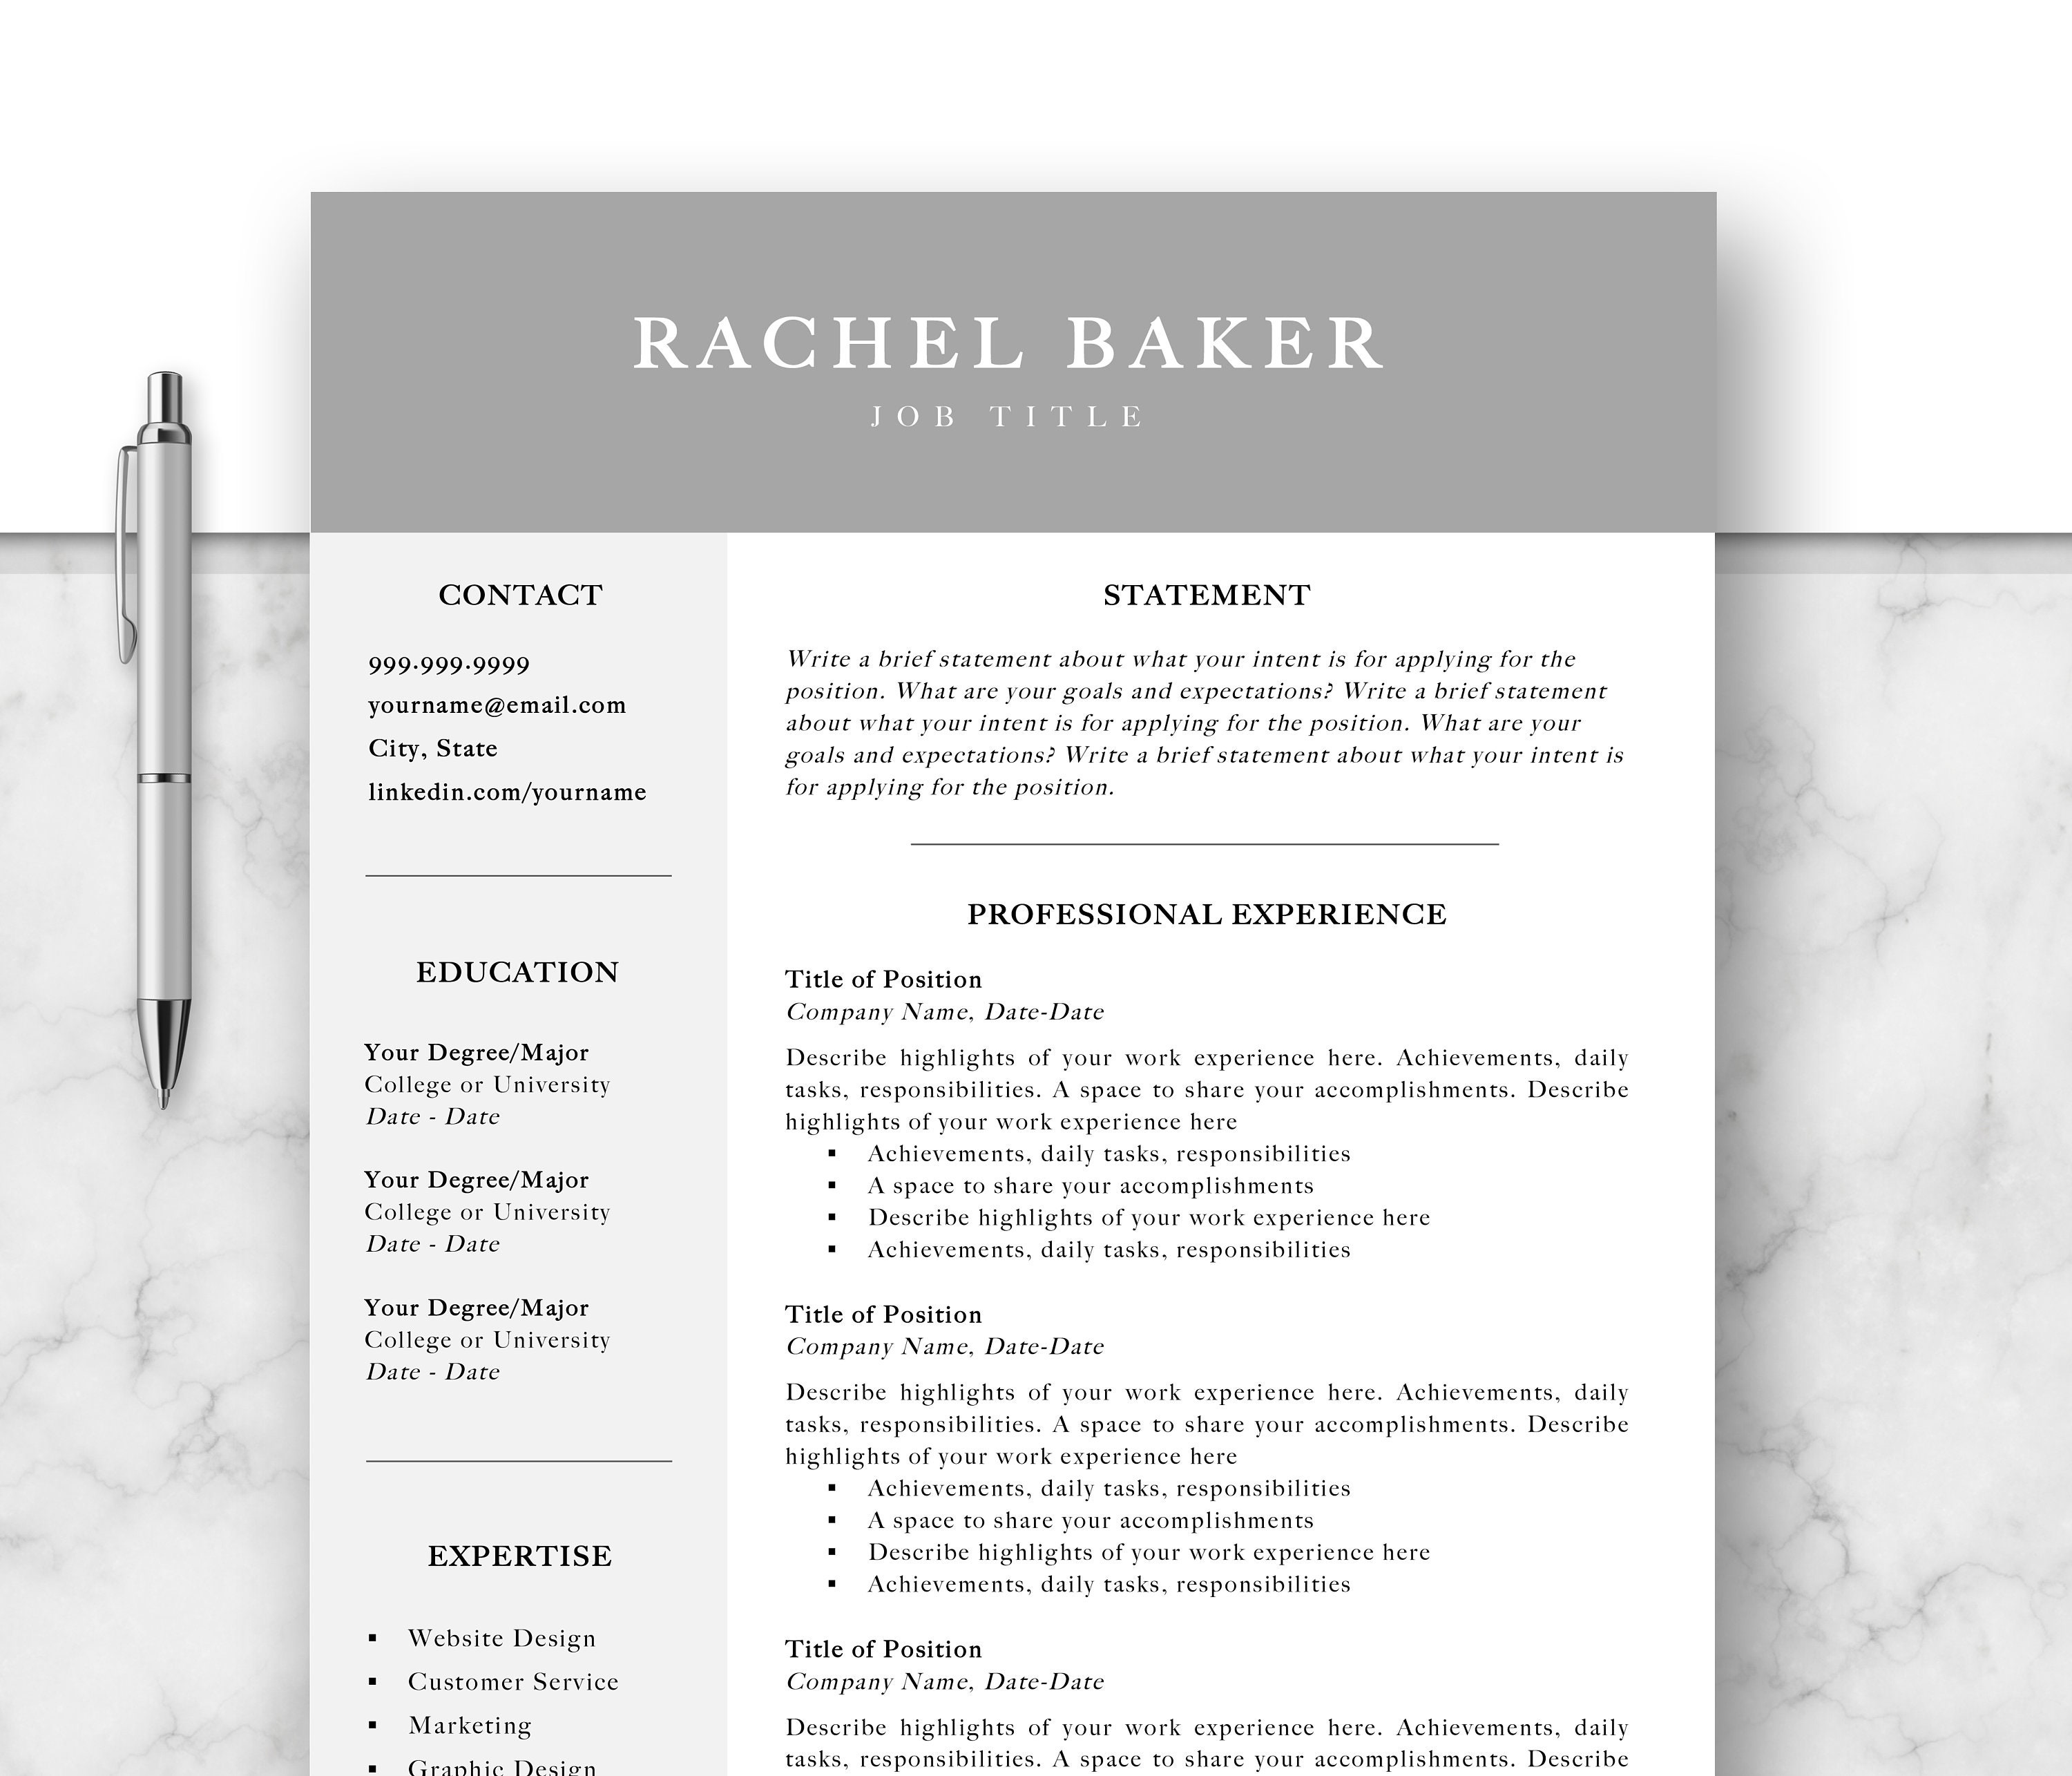 Professional Resume Template Cv Curriculum Vitae Template Design